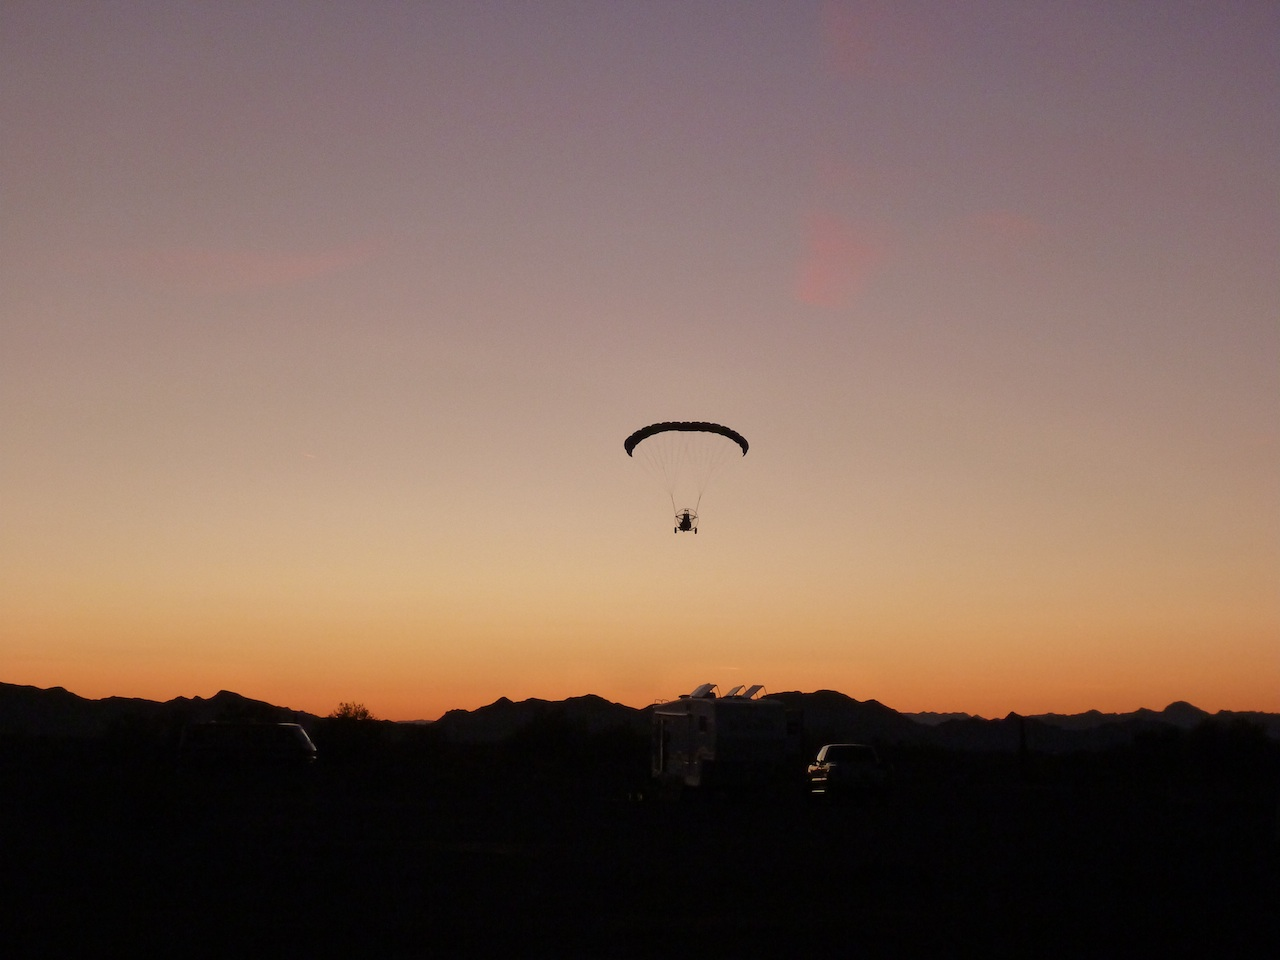 People Flying In Their Powered Parachute Into The Sunset